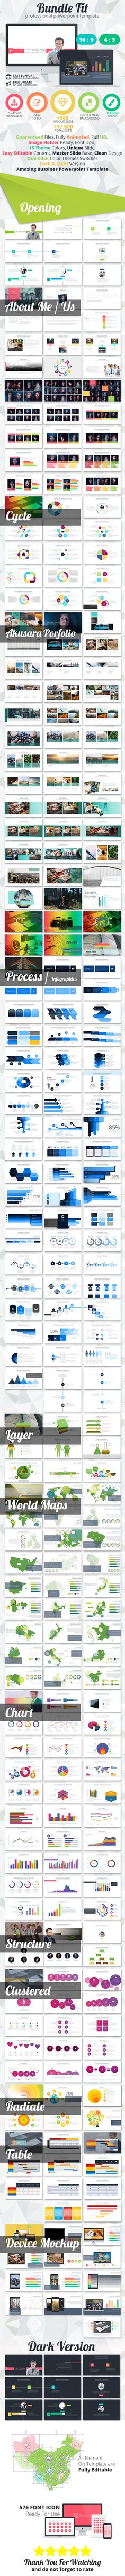 FIT - Multipurpose Powerpoint Template